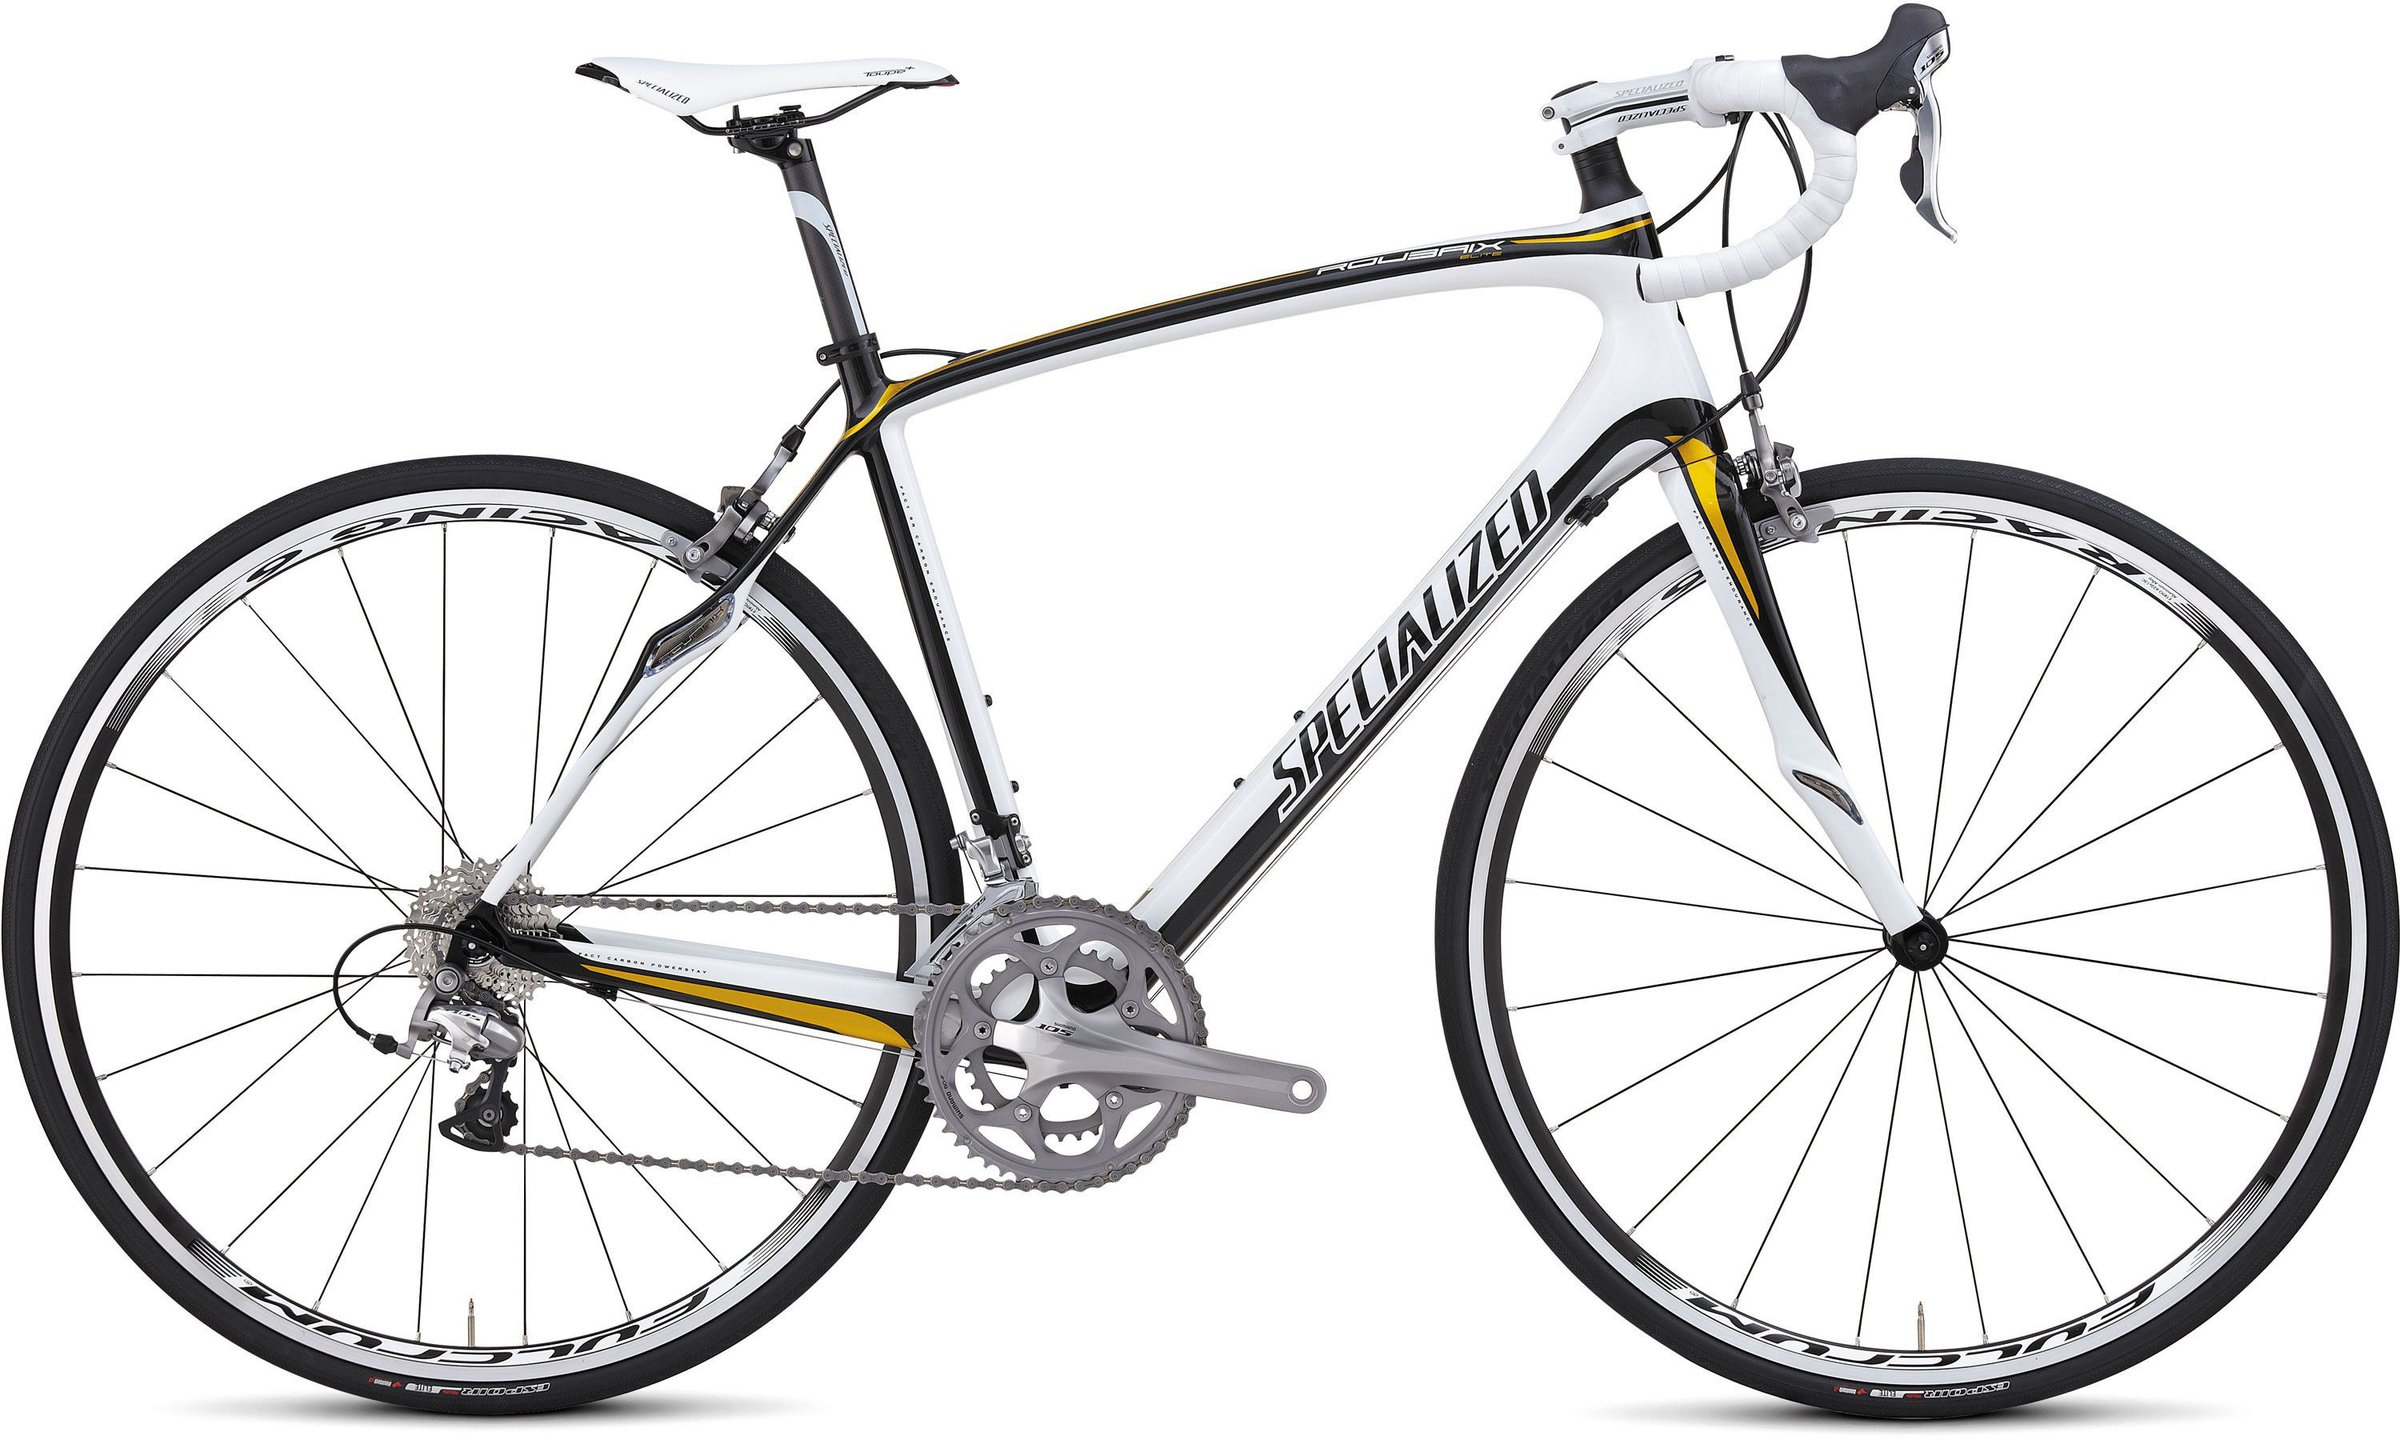 91ac8b66931 Specialized Roubaix Elite Compact - Durst Cycle & Fitness